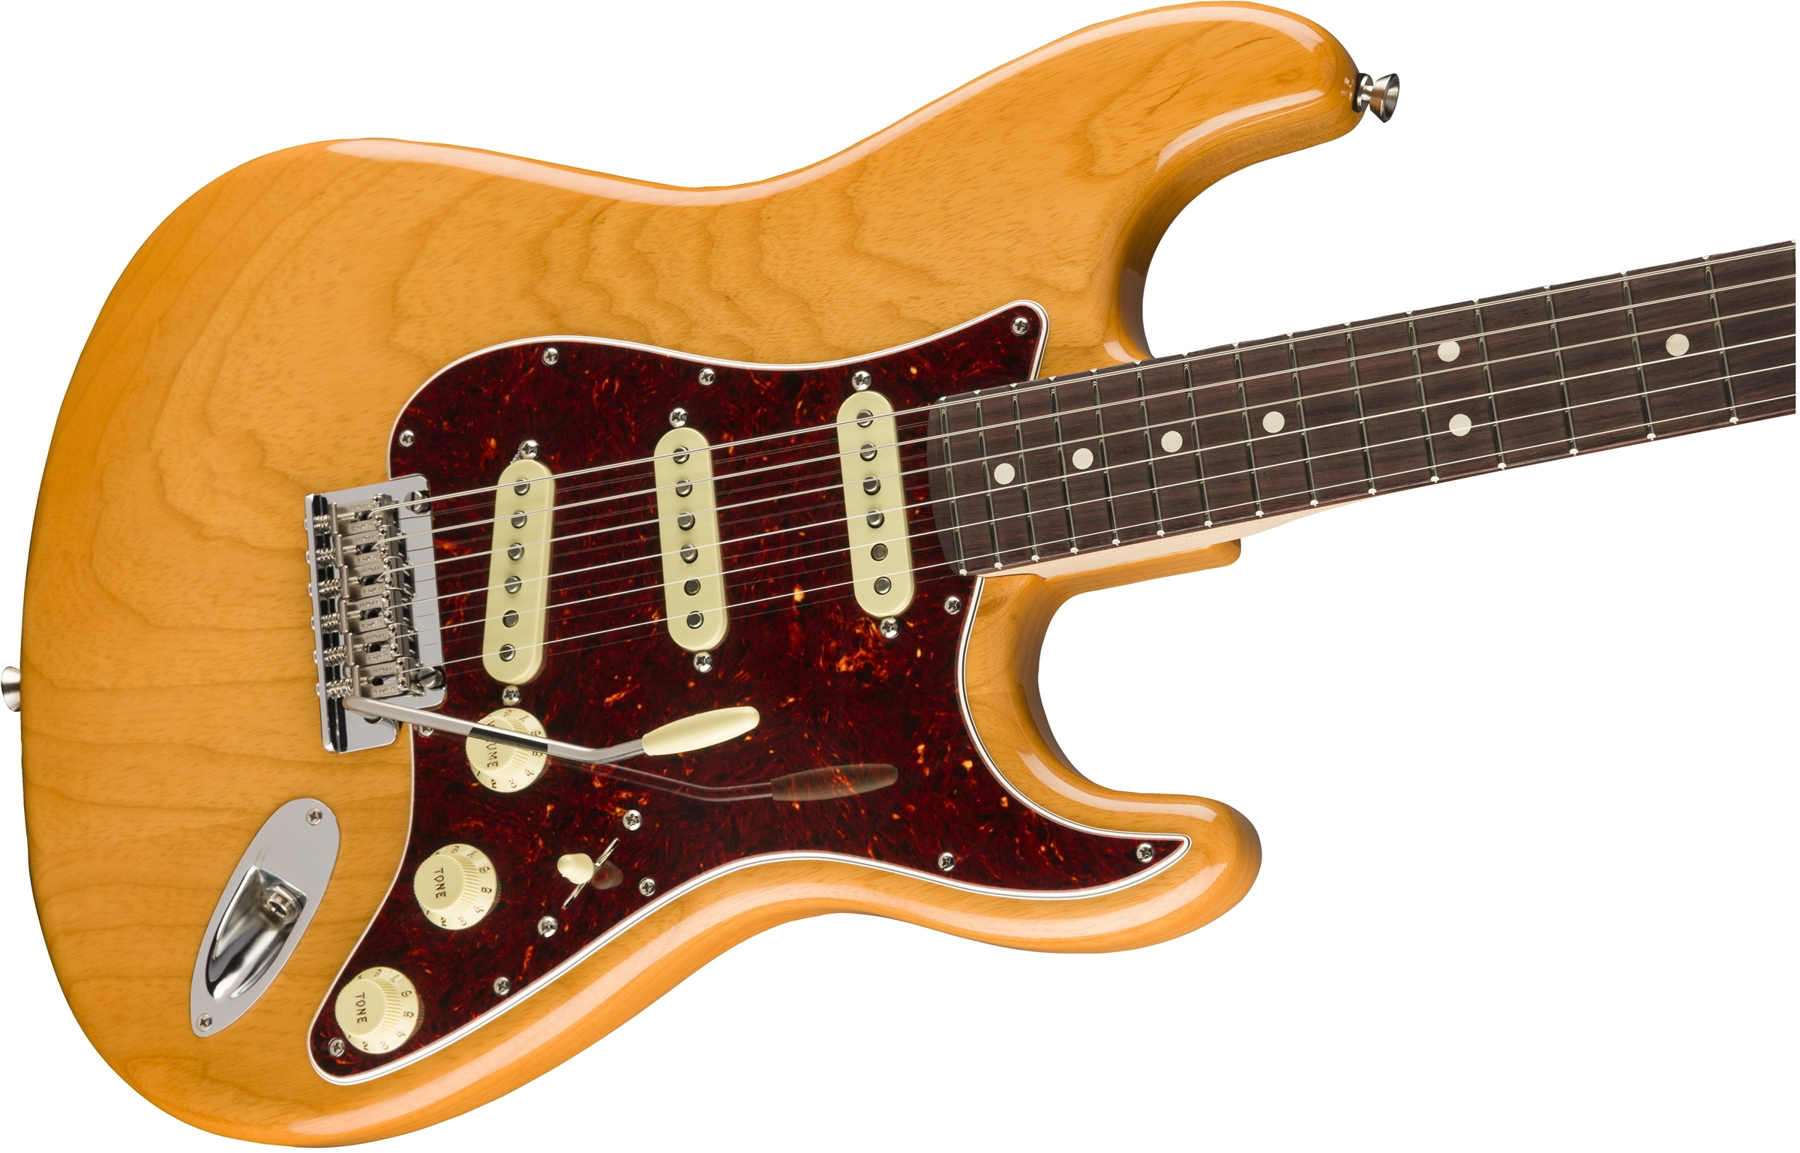 Limited Edition Lightweight Ash American Professional Stratocaster, Rosewood Fingerboard, Aged Natural追加画像